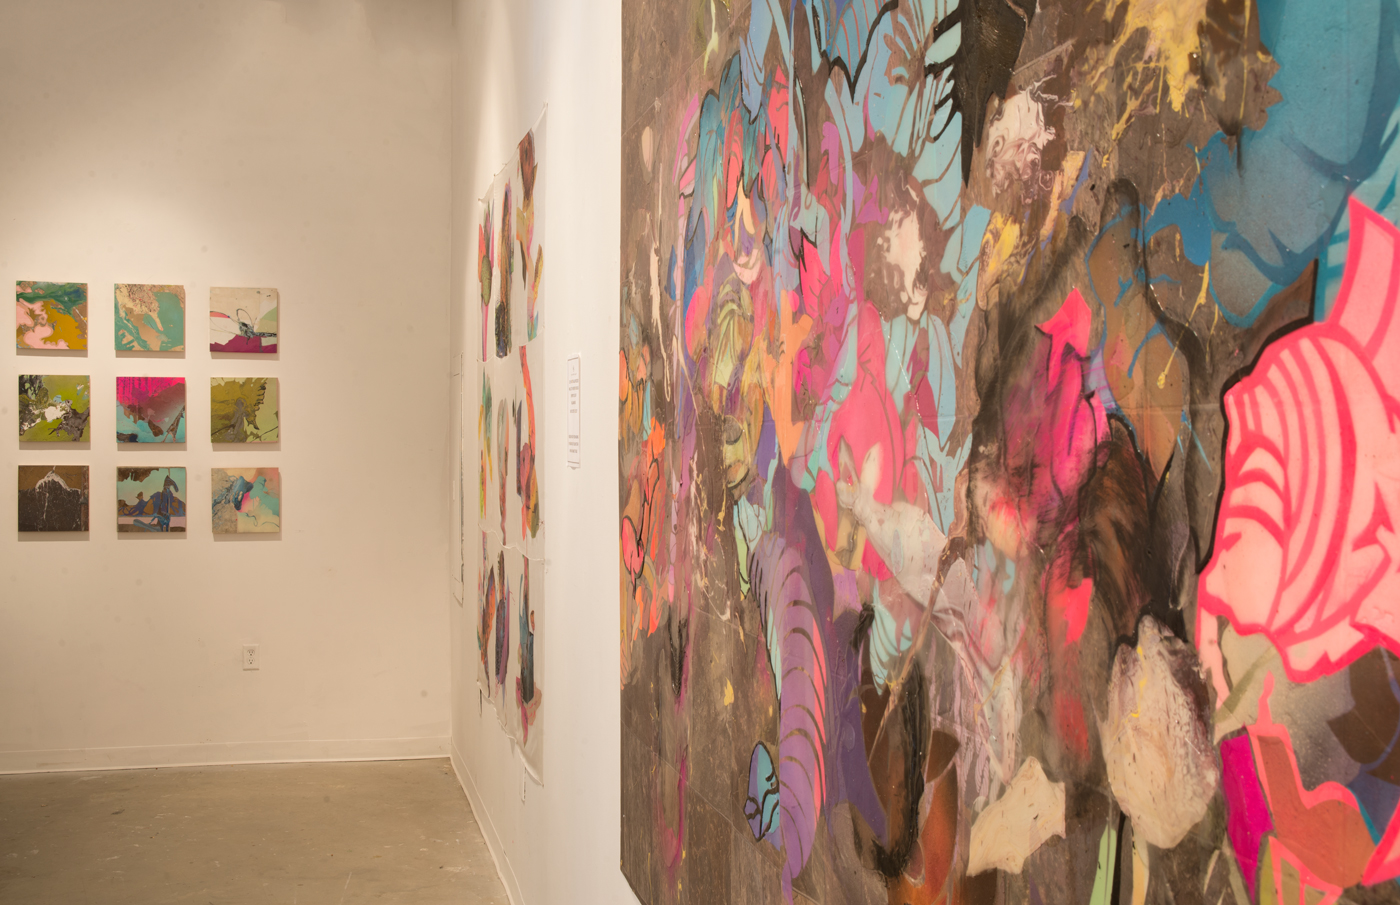 Leigh Anne Chamber's work in Surface